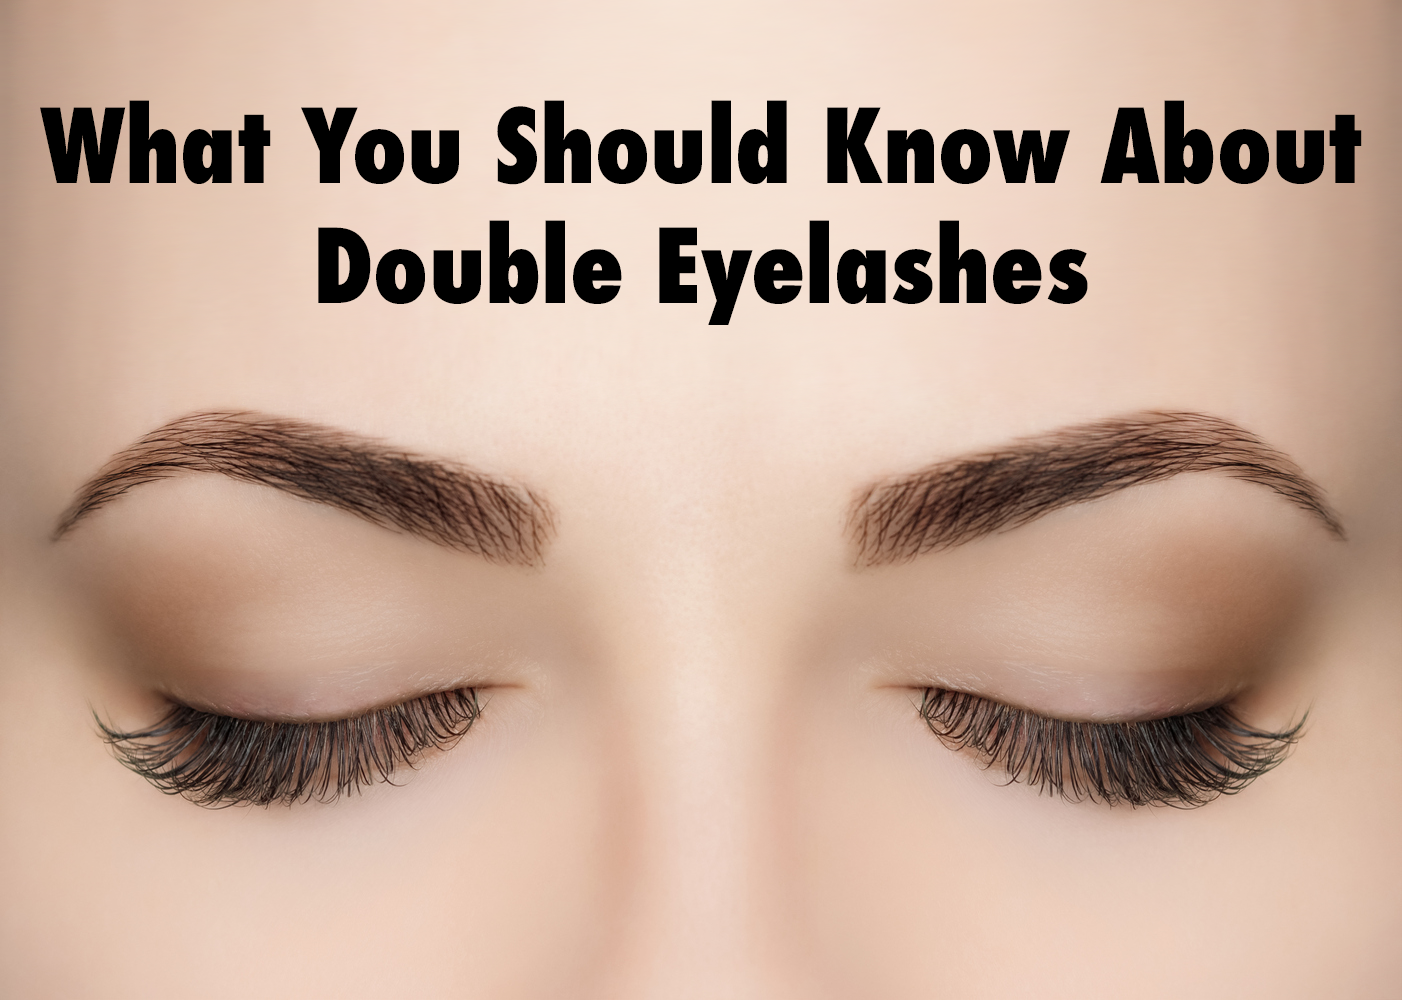 What You Should Know About Double Eyelashes Our Blog Pinterest